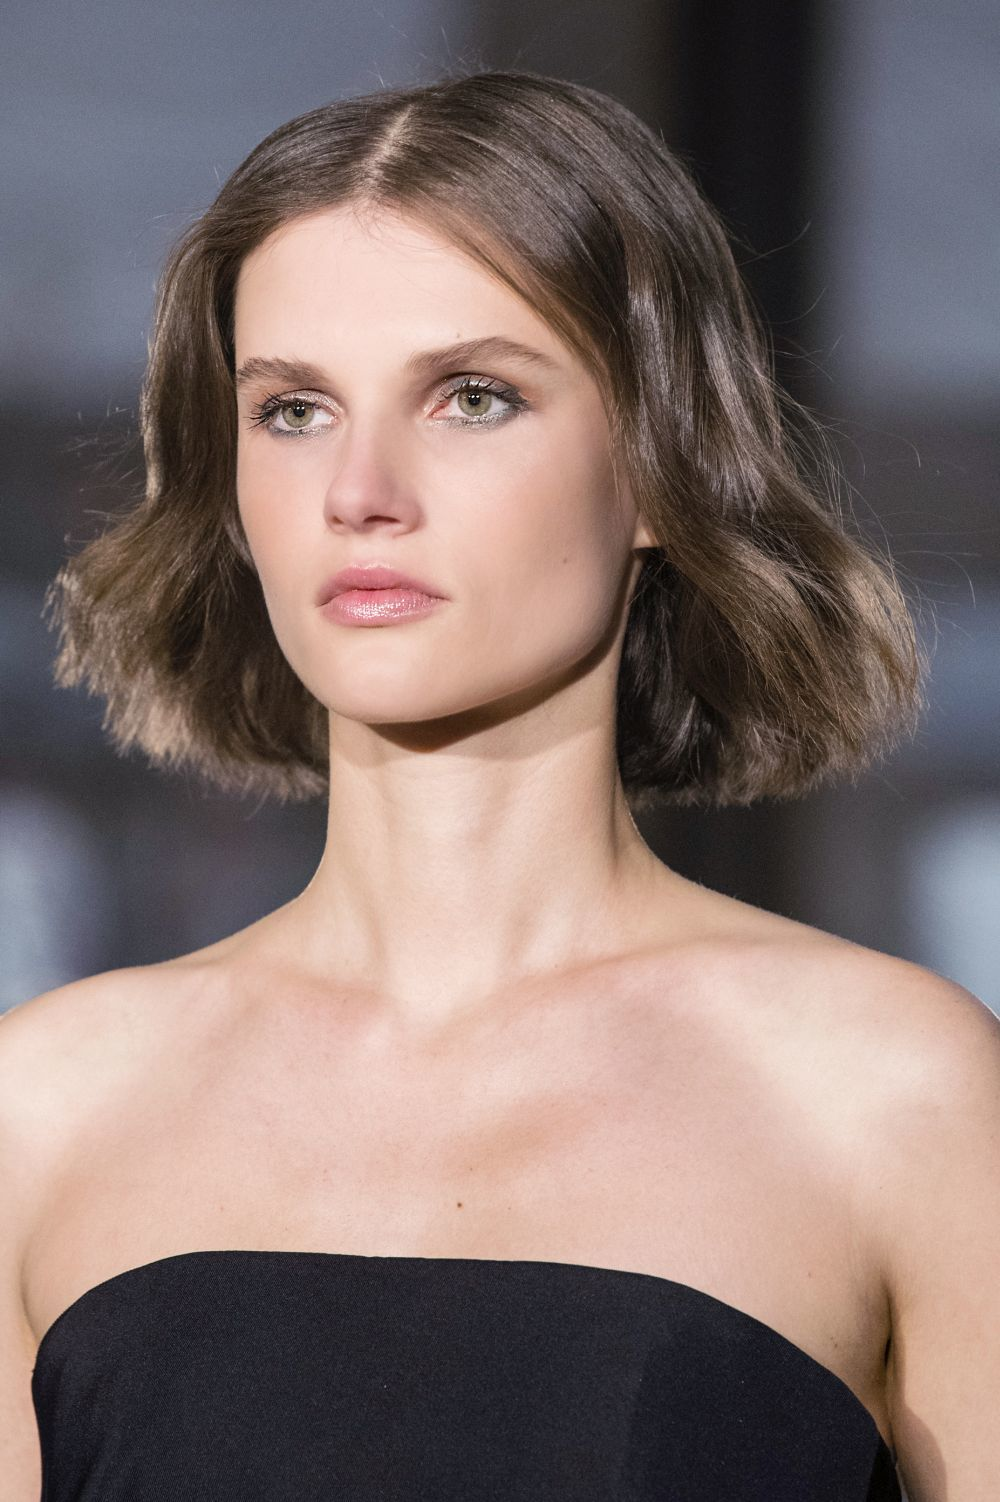 Ultimas tendencias en cortes de pelo 2019